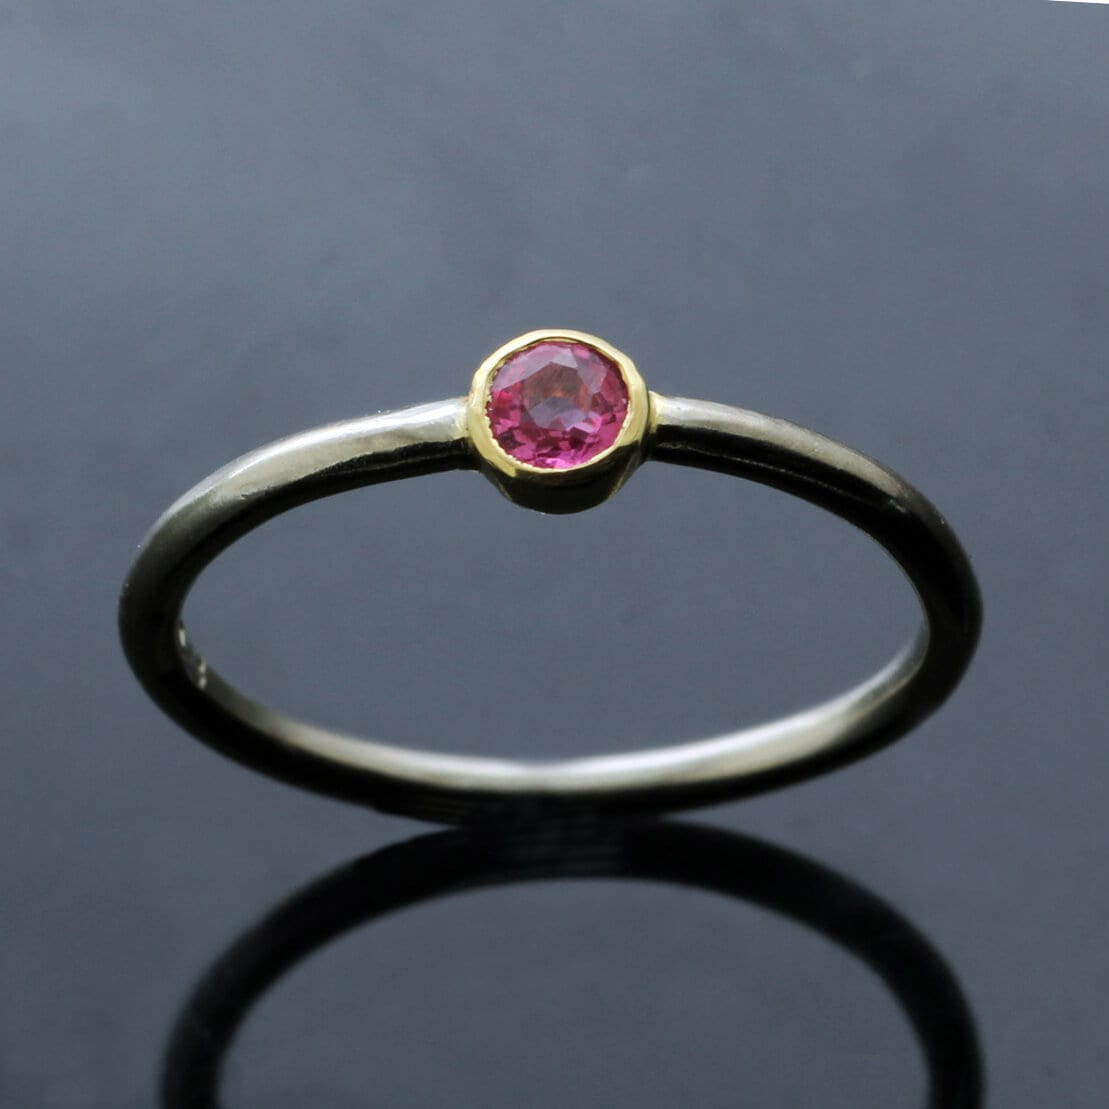 Solid White Gold stacking ring with Round Brilliant Pink Sapphire gemstone